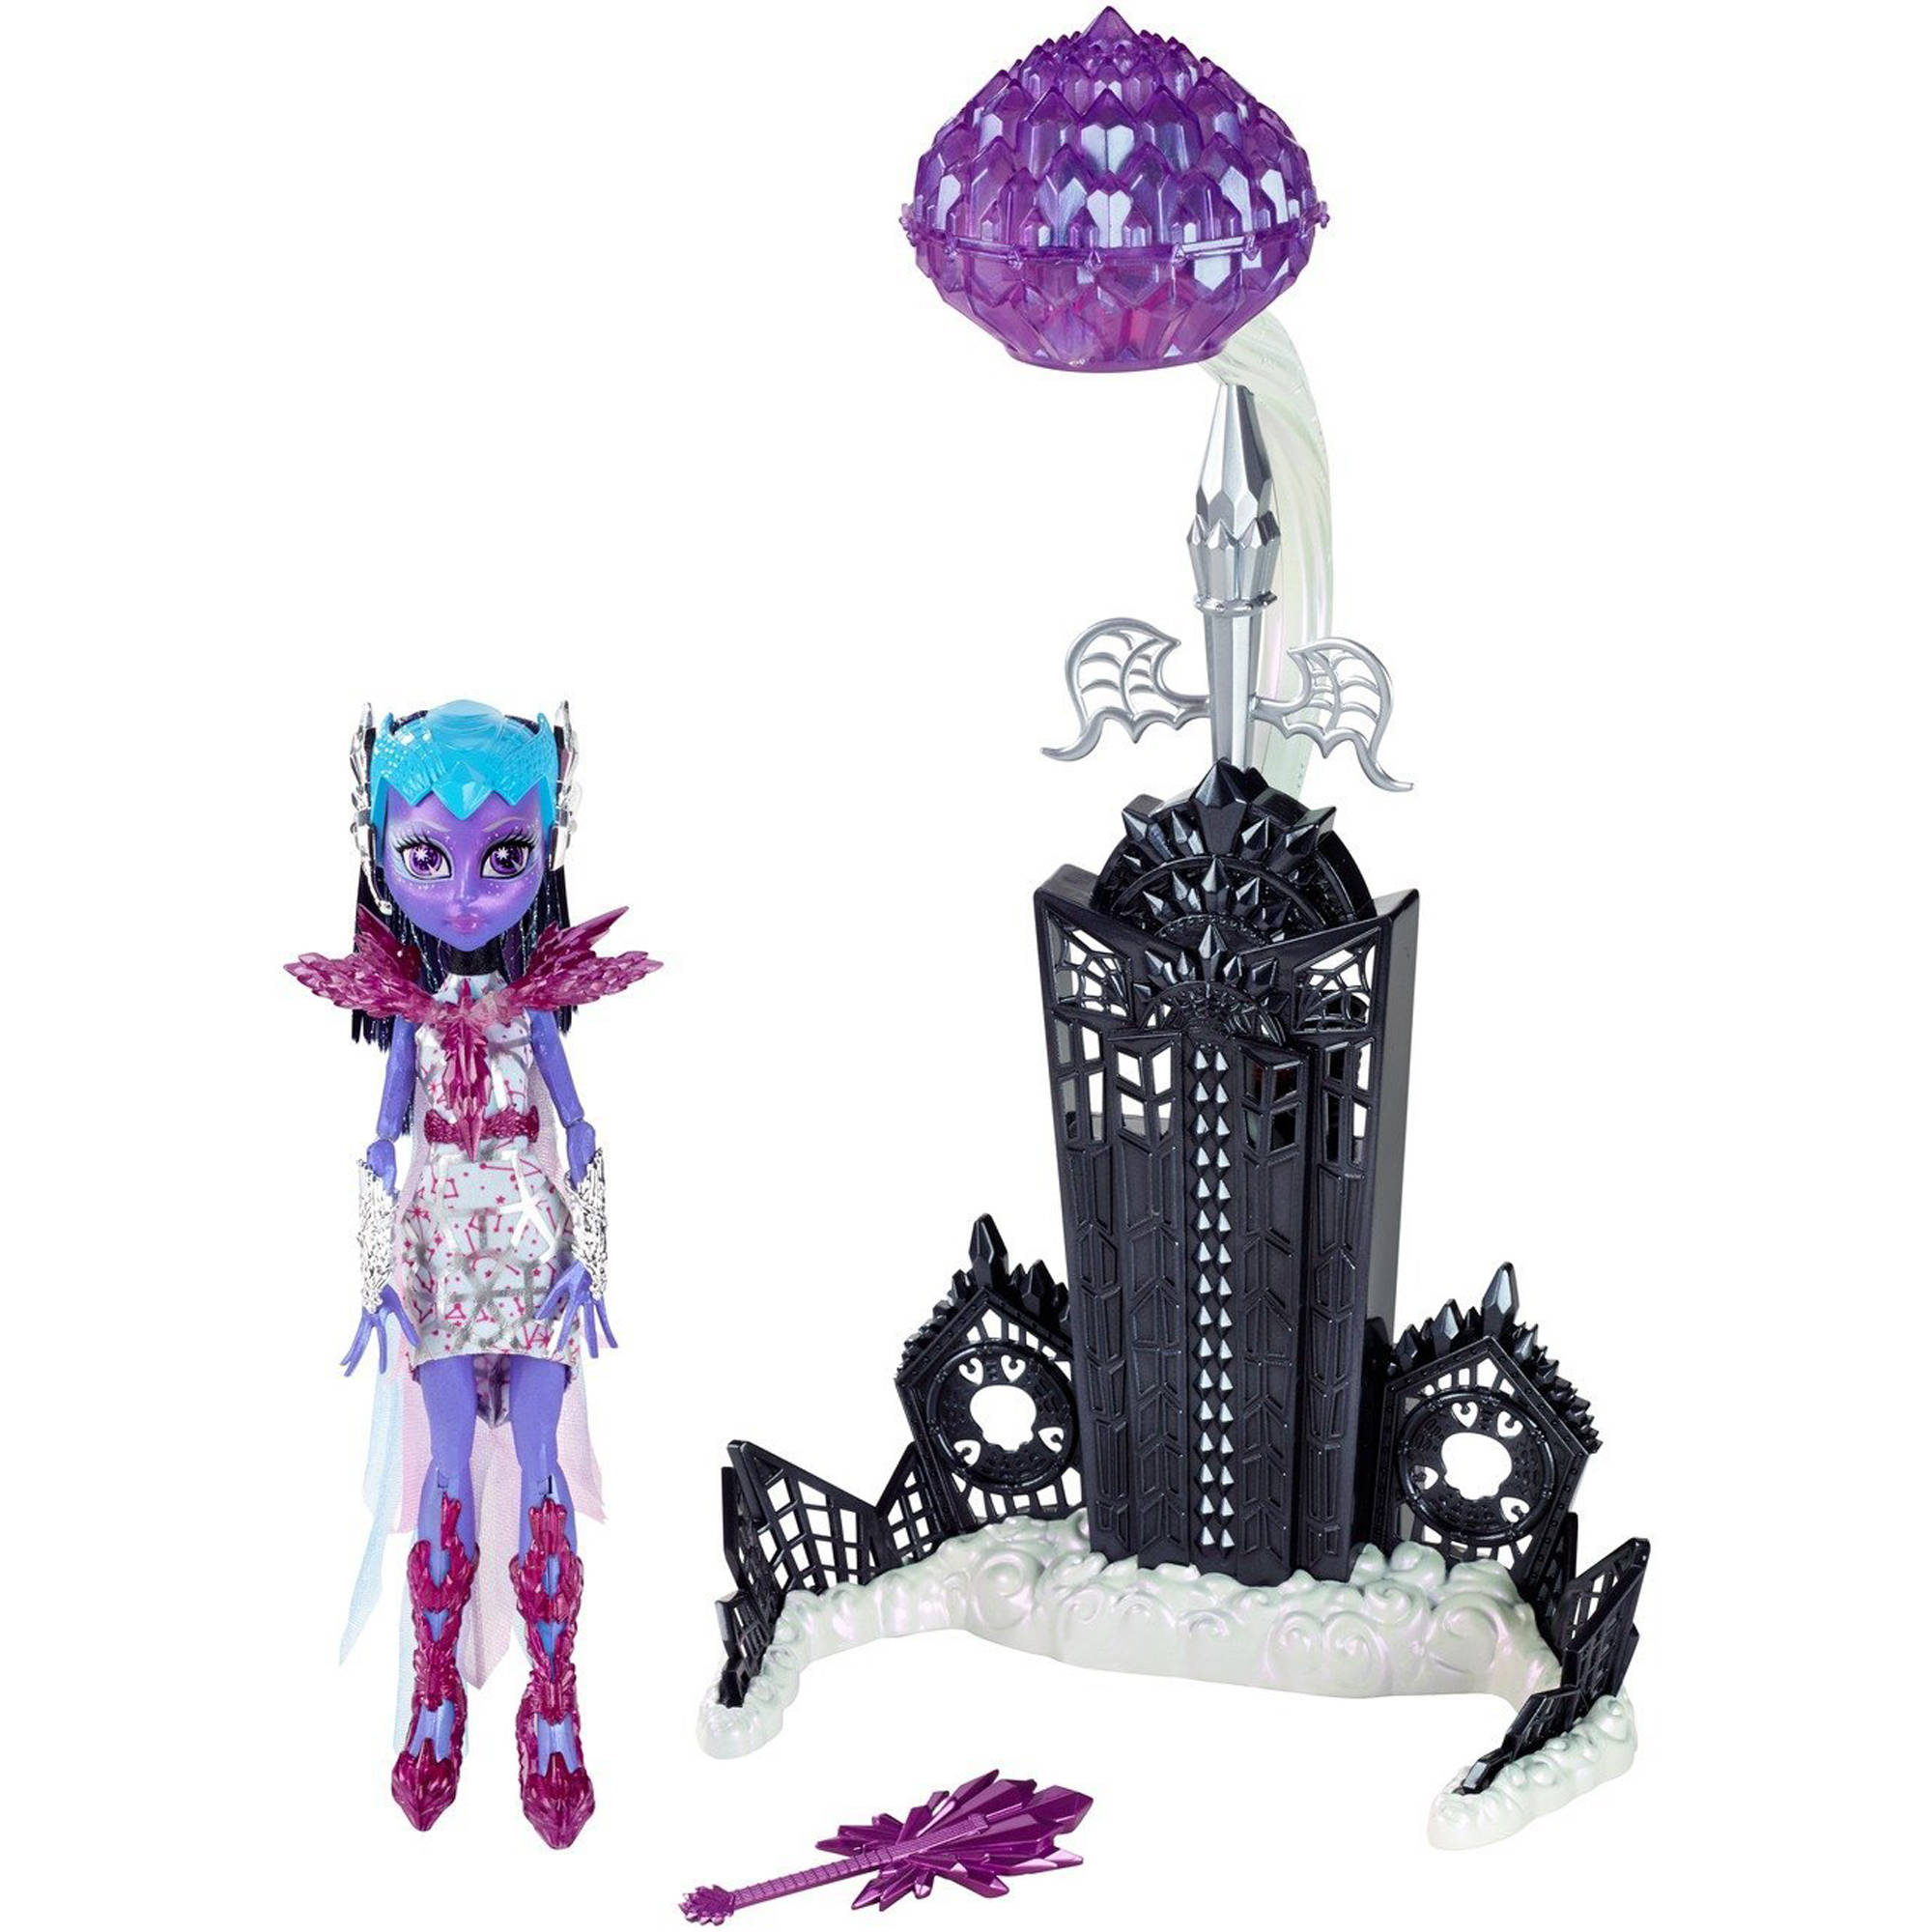 Monster High Boo York Flotation Station and Astranova Doll